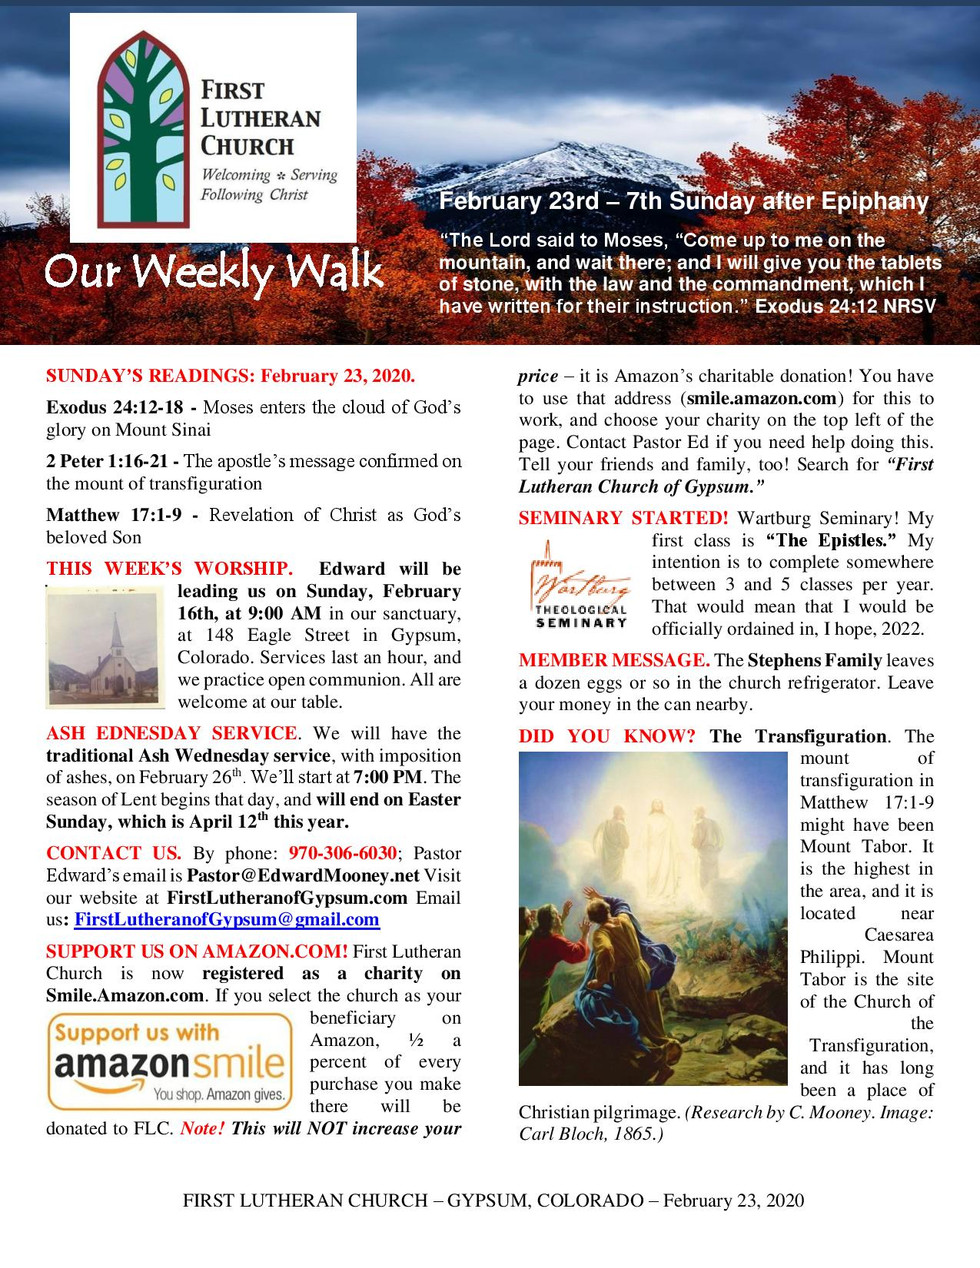 Newsletter, February 23, 2020, page 1